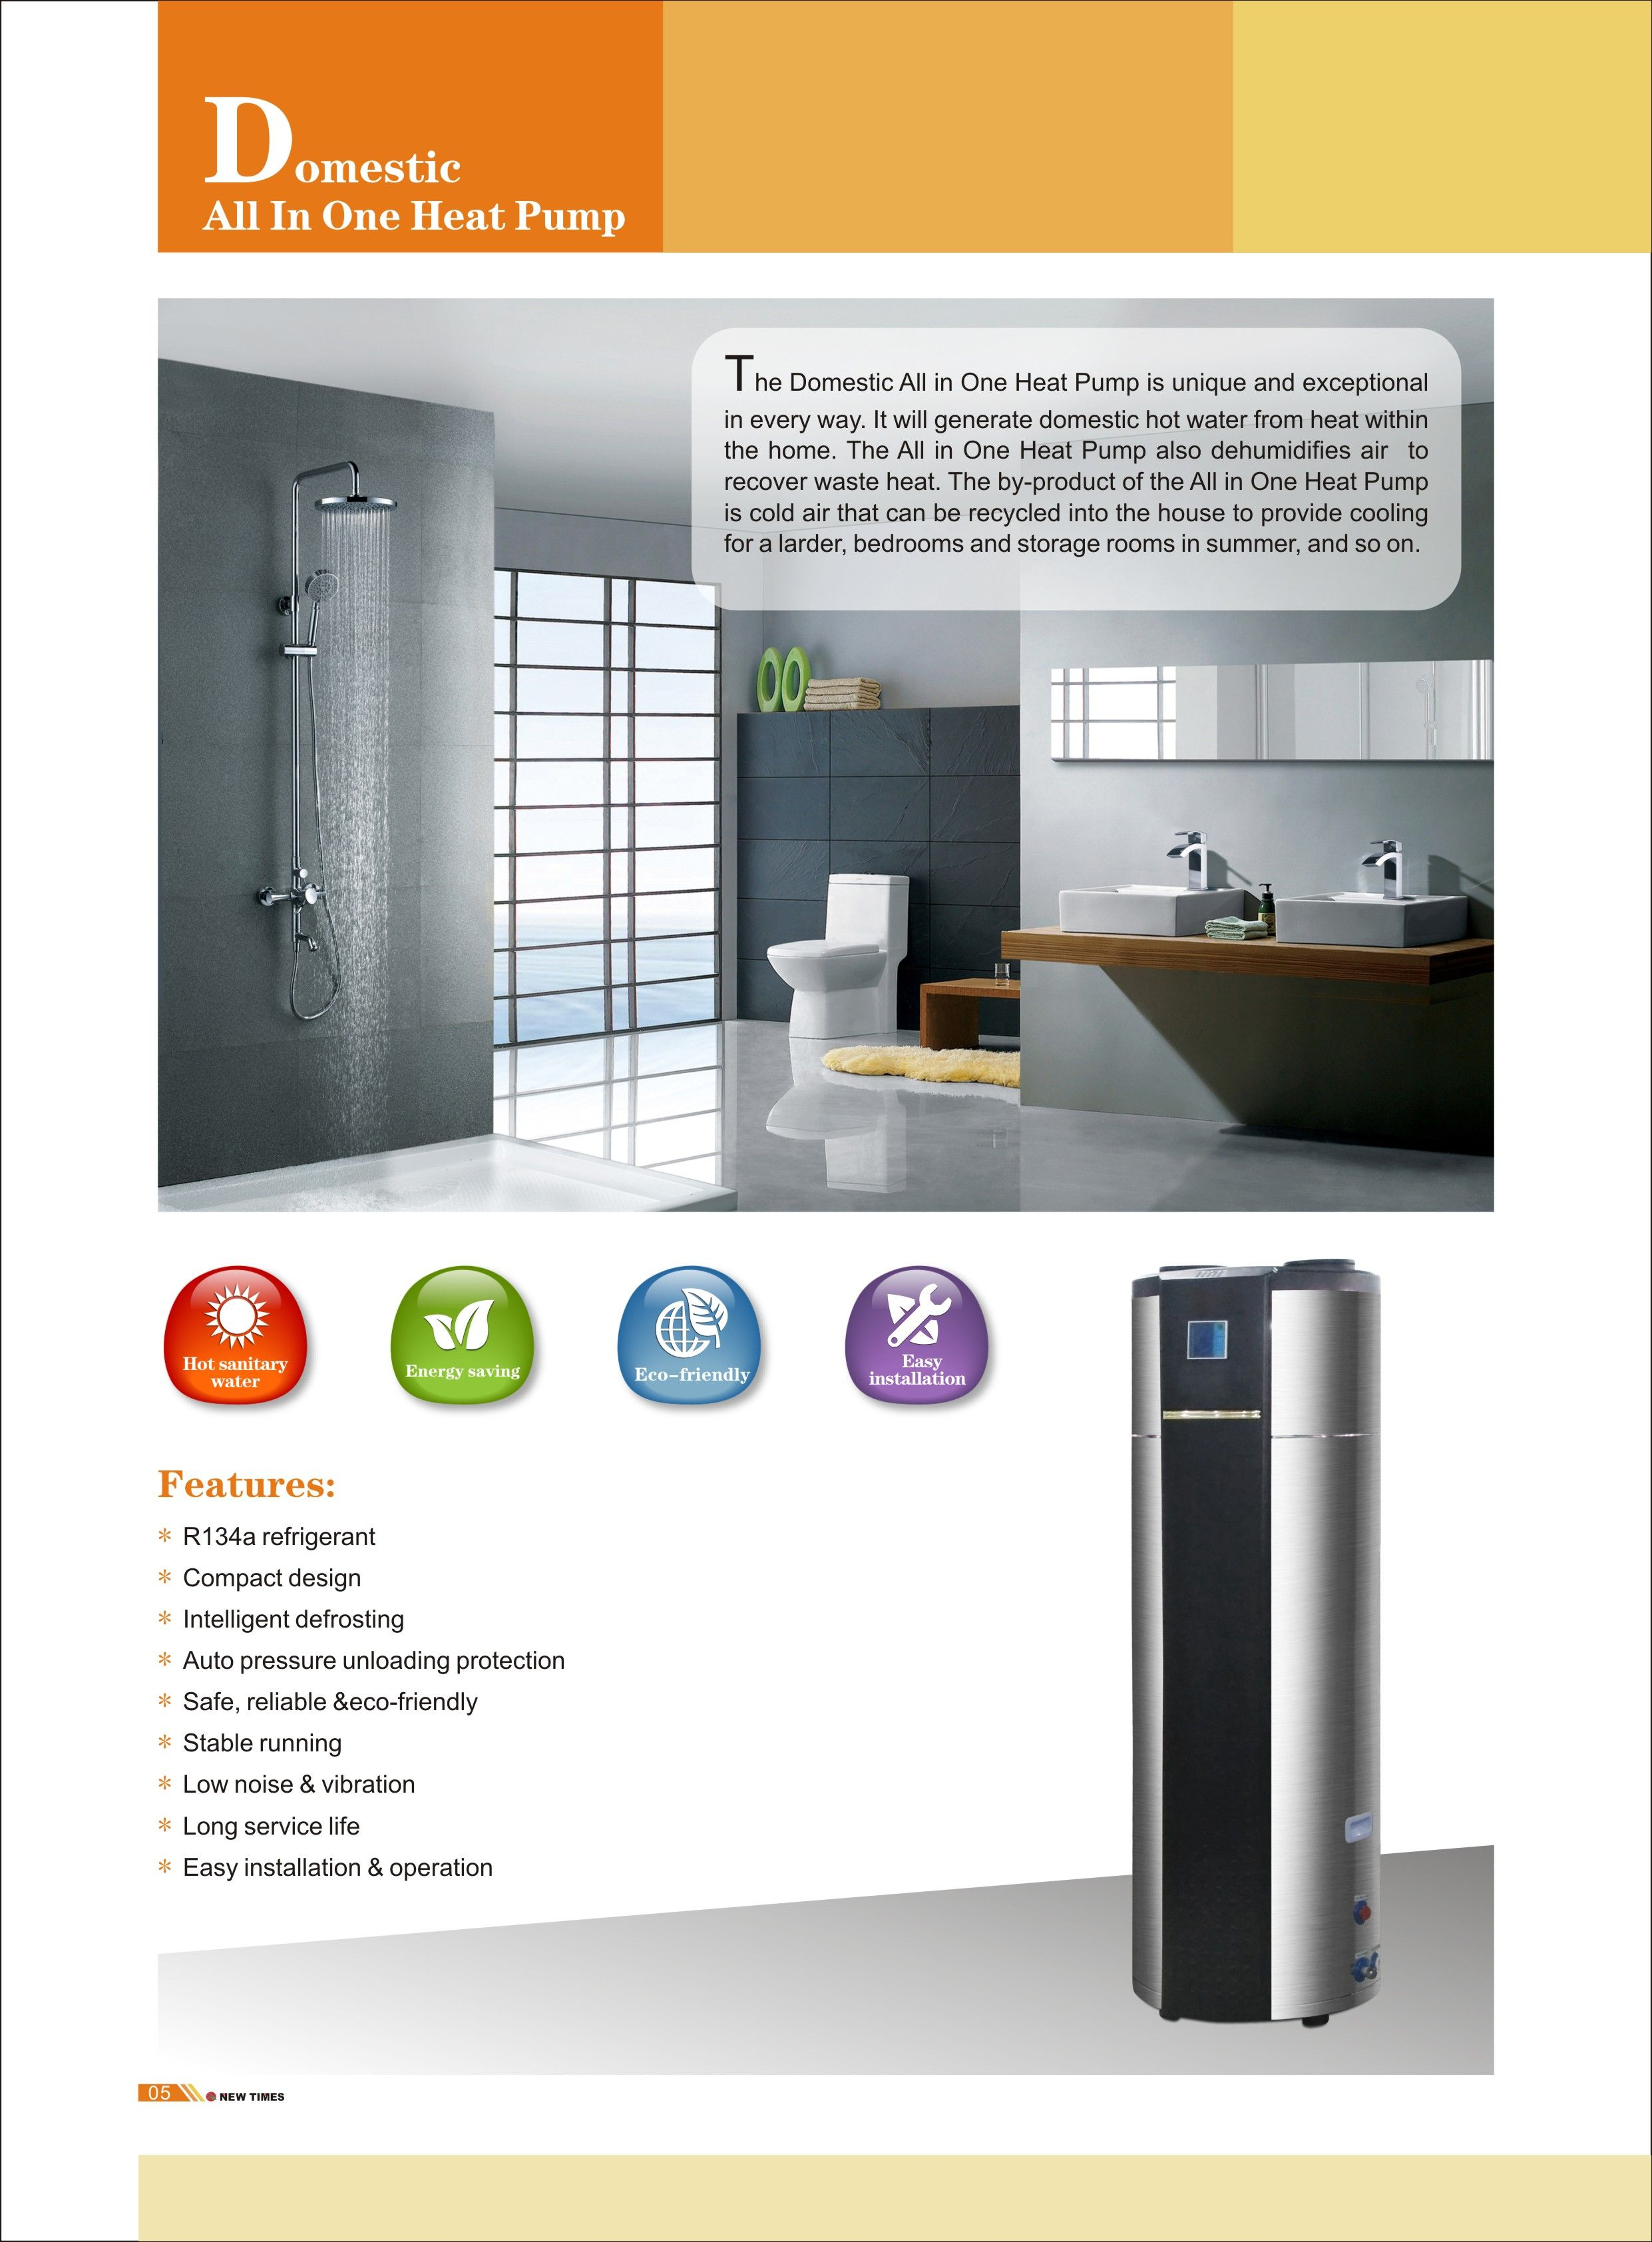 Air to water heat pump, water to water heat pump, the best